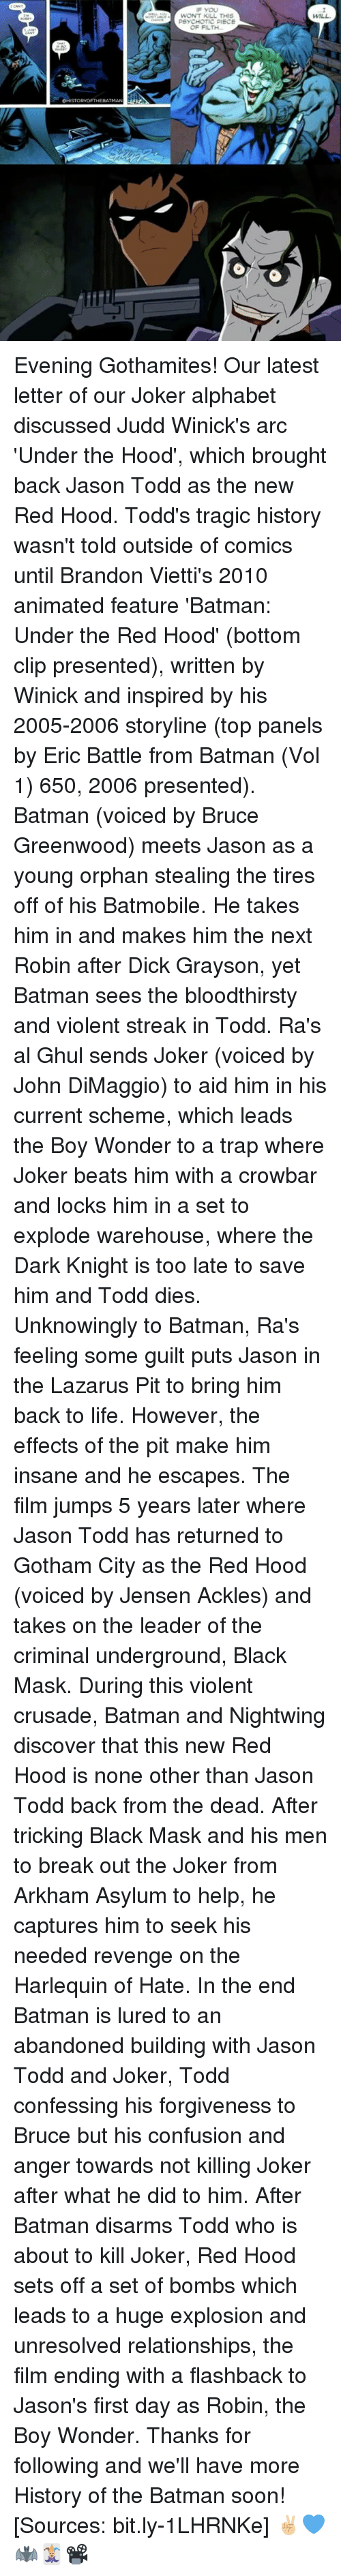 Batman, Joker, and Life: STORY OFTHE BATMAN  WON'T KILL THIS  PSYCHOTIC PIECE  WILL. Evening Gothamites! Our latest letter of our Joker alphabet discussed Judd Winick's arc 'Under the Hood', which brought back Jason Todd as the new Red Hood. Todd's tragic history wasn't told outside of comics until Brandon Vietti's 2010 animated feature 'Batman: Under the Red Hood' (bottom clip presented), written by Winick and inspired by his 2005-2006 storyline (top panels by Eric Battle from Batman (Vol 1) 650, 2006 presented). Batman (voiced by Bruce Greenwood) meets Jason as a young orphan stealing the tires off of his Batmobile. He takes him in and makes him the next Robin after Dick Grayson, yet Batman sees the bloodthirsty and violent streak in Todd. Ra's al Ghul sends Joker (voiced by John DiMaggio) to aid him in his current scheme, which leads the Boy Wonder to a trap where Joker beats him with a crowbar and locks him in a set to explode warehouse, where the Dark Knight is too late to save him and Todd dies. Unknowingly to Batman, Ra's feeling some guilt puts Jason in the Lazarus Pit to bring him back to life. However, the effects of the pit make him insane and he escapes. The film jumps 5 years later where Jason Todd has returned to Gotham City as the Red Hood (voiced by Jensen Ackles) and takes on the leader of the criminal underground, Black Mask. During this violent crusade, Batman and Nightwing discover that this new Red Hood is none other than Jason Todd back from the dead. After tricking Black Mask and his men to break out the Joker from Arkham Asylum to help, he captures him to seek his needed revenge on the Harlequin of Hate. In the end Batman is lured to an abandoned building with Jason Todd and Joker, Todd confessing his forgiveness to Bruce but his confusion and anger towards not killing Joker after what he did to him. After Batman disarms Todd who is about to kill Joker, Red Hood sets off a set of bombs which leads to a huge explosion and unresolved relationships, the film ending with a flashback to Jason's first day as Robin, the Boy Wonder. Thanks for following and we'll have more History of the Batman soon! [Sources: bit.ly-1LHRNKe] ✌🏼💙🦇🃏📽